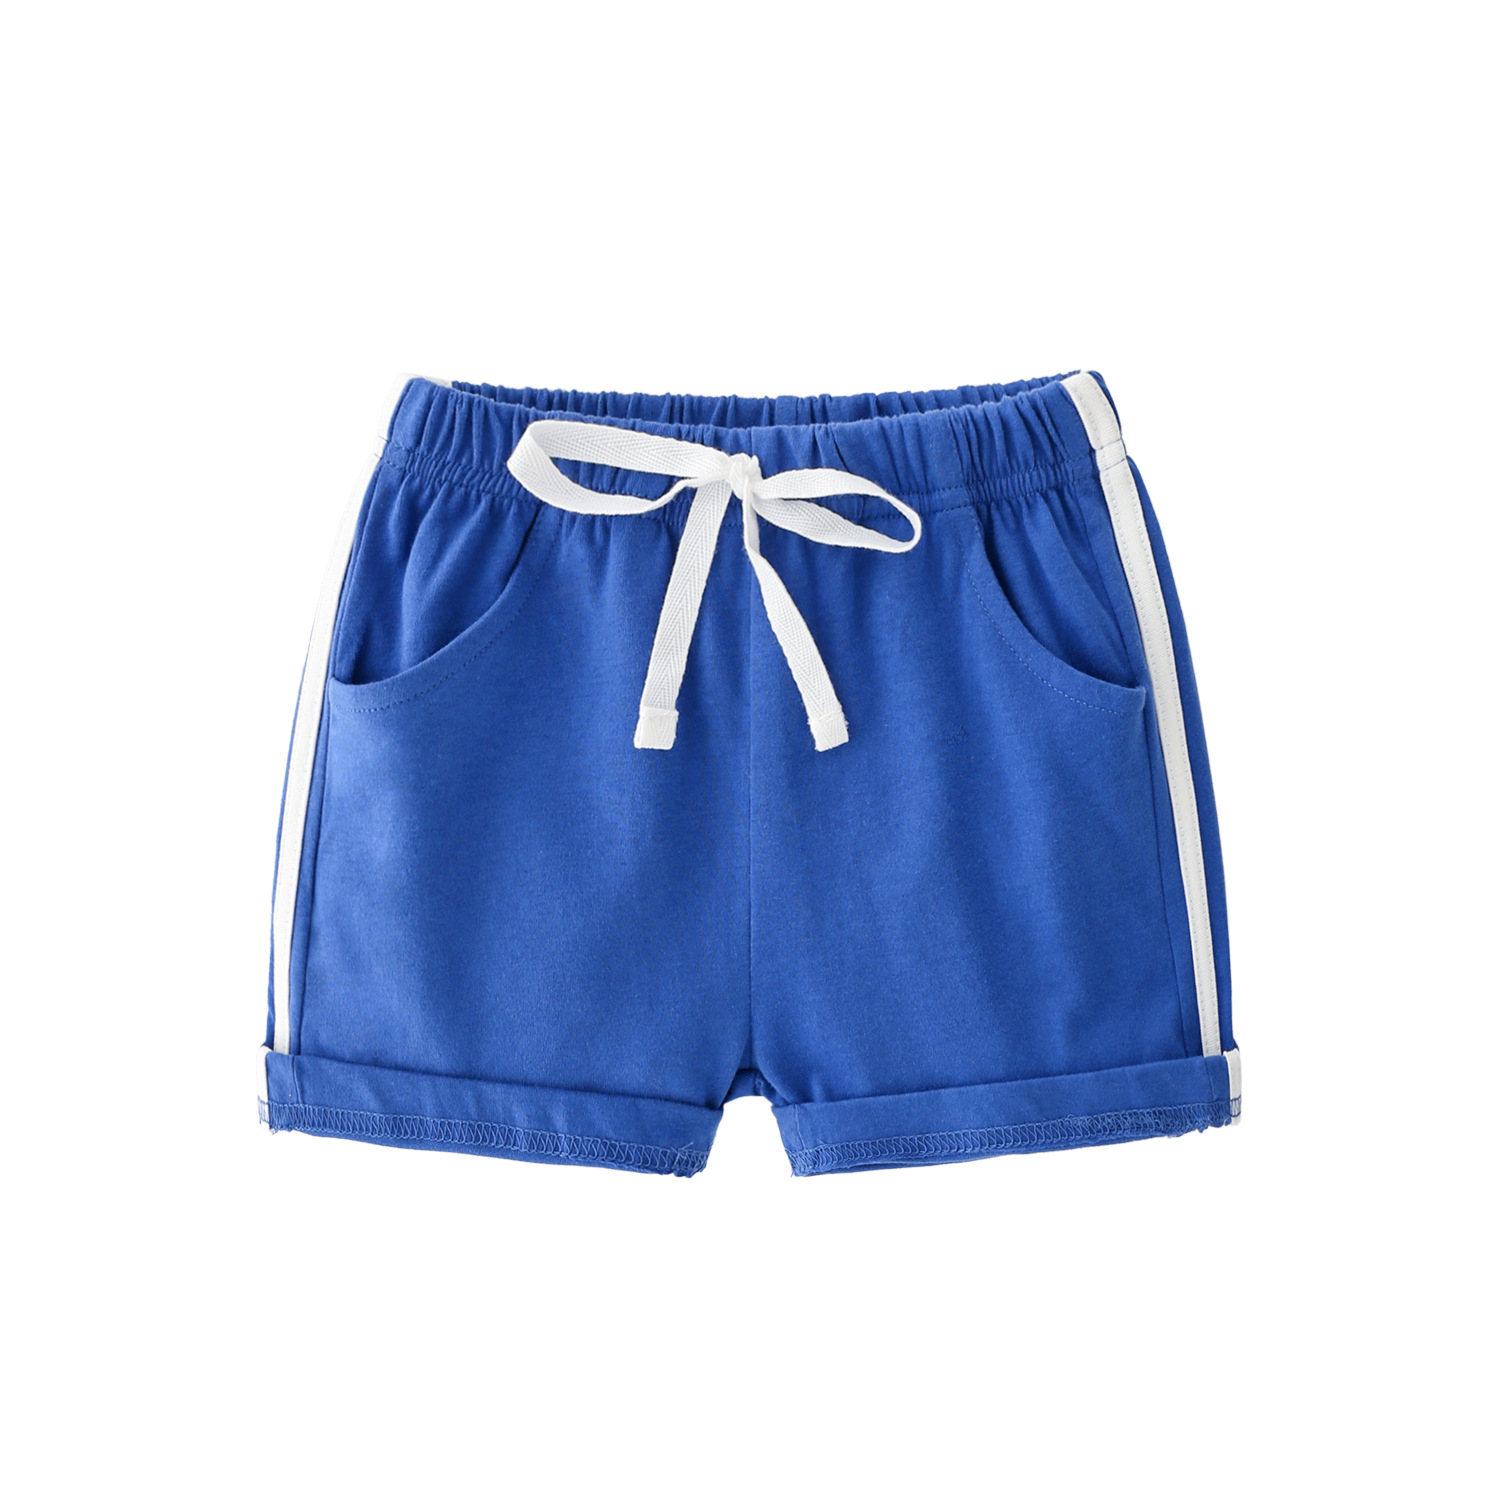 Summer Fashion For Kids Short Pants For Baby Boy Casual Pants Cotton Shorts Baby Toddler Boys Shorts 2 6 Years in Shorts from Mother Kids